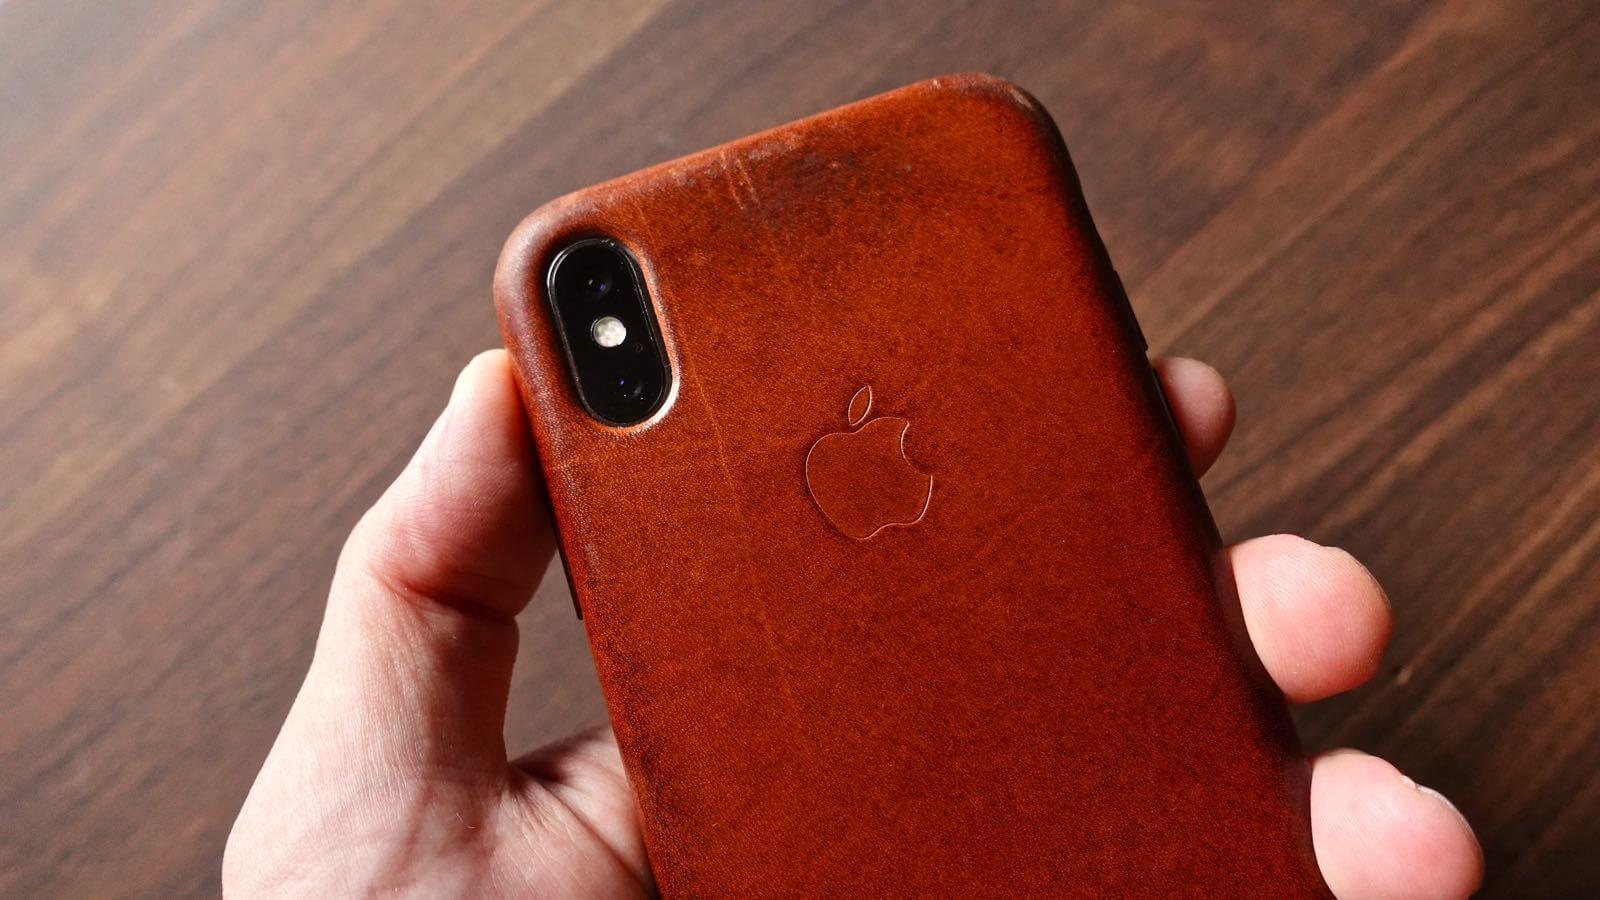 0215 iPhone Leather Case Aging 01 A year and a half later